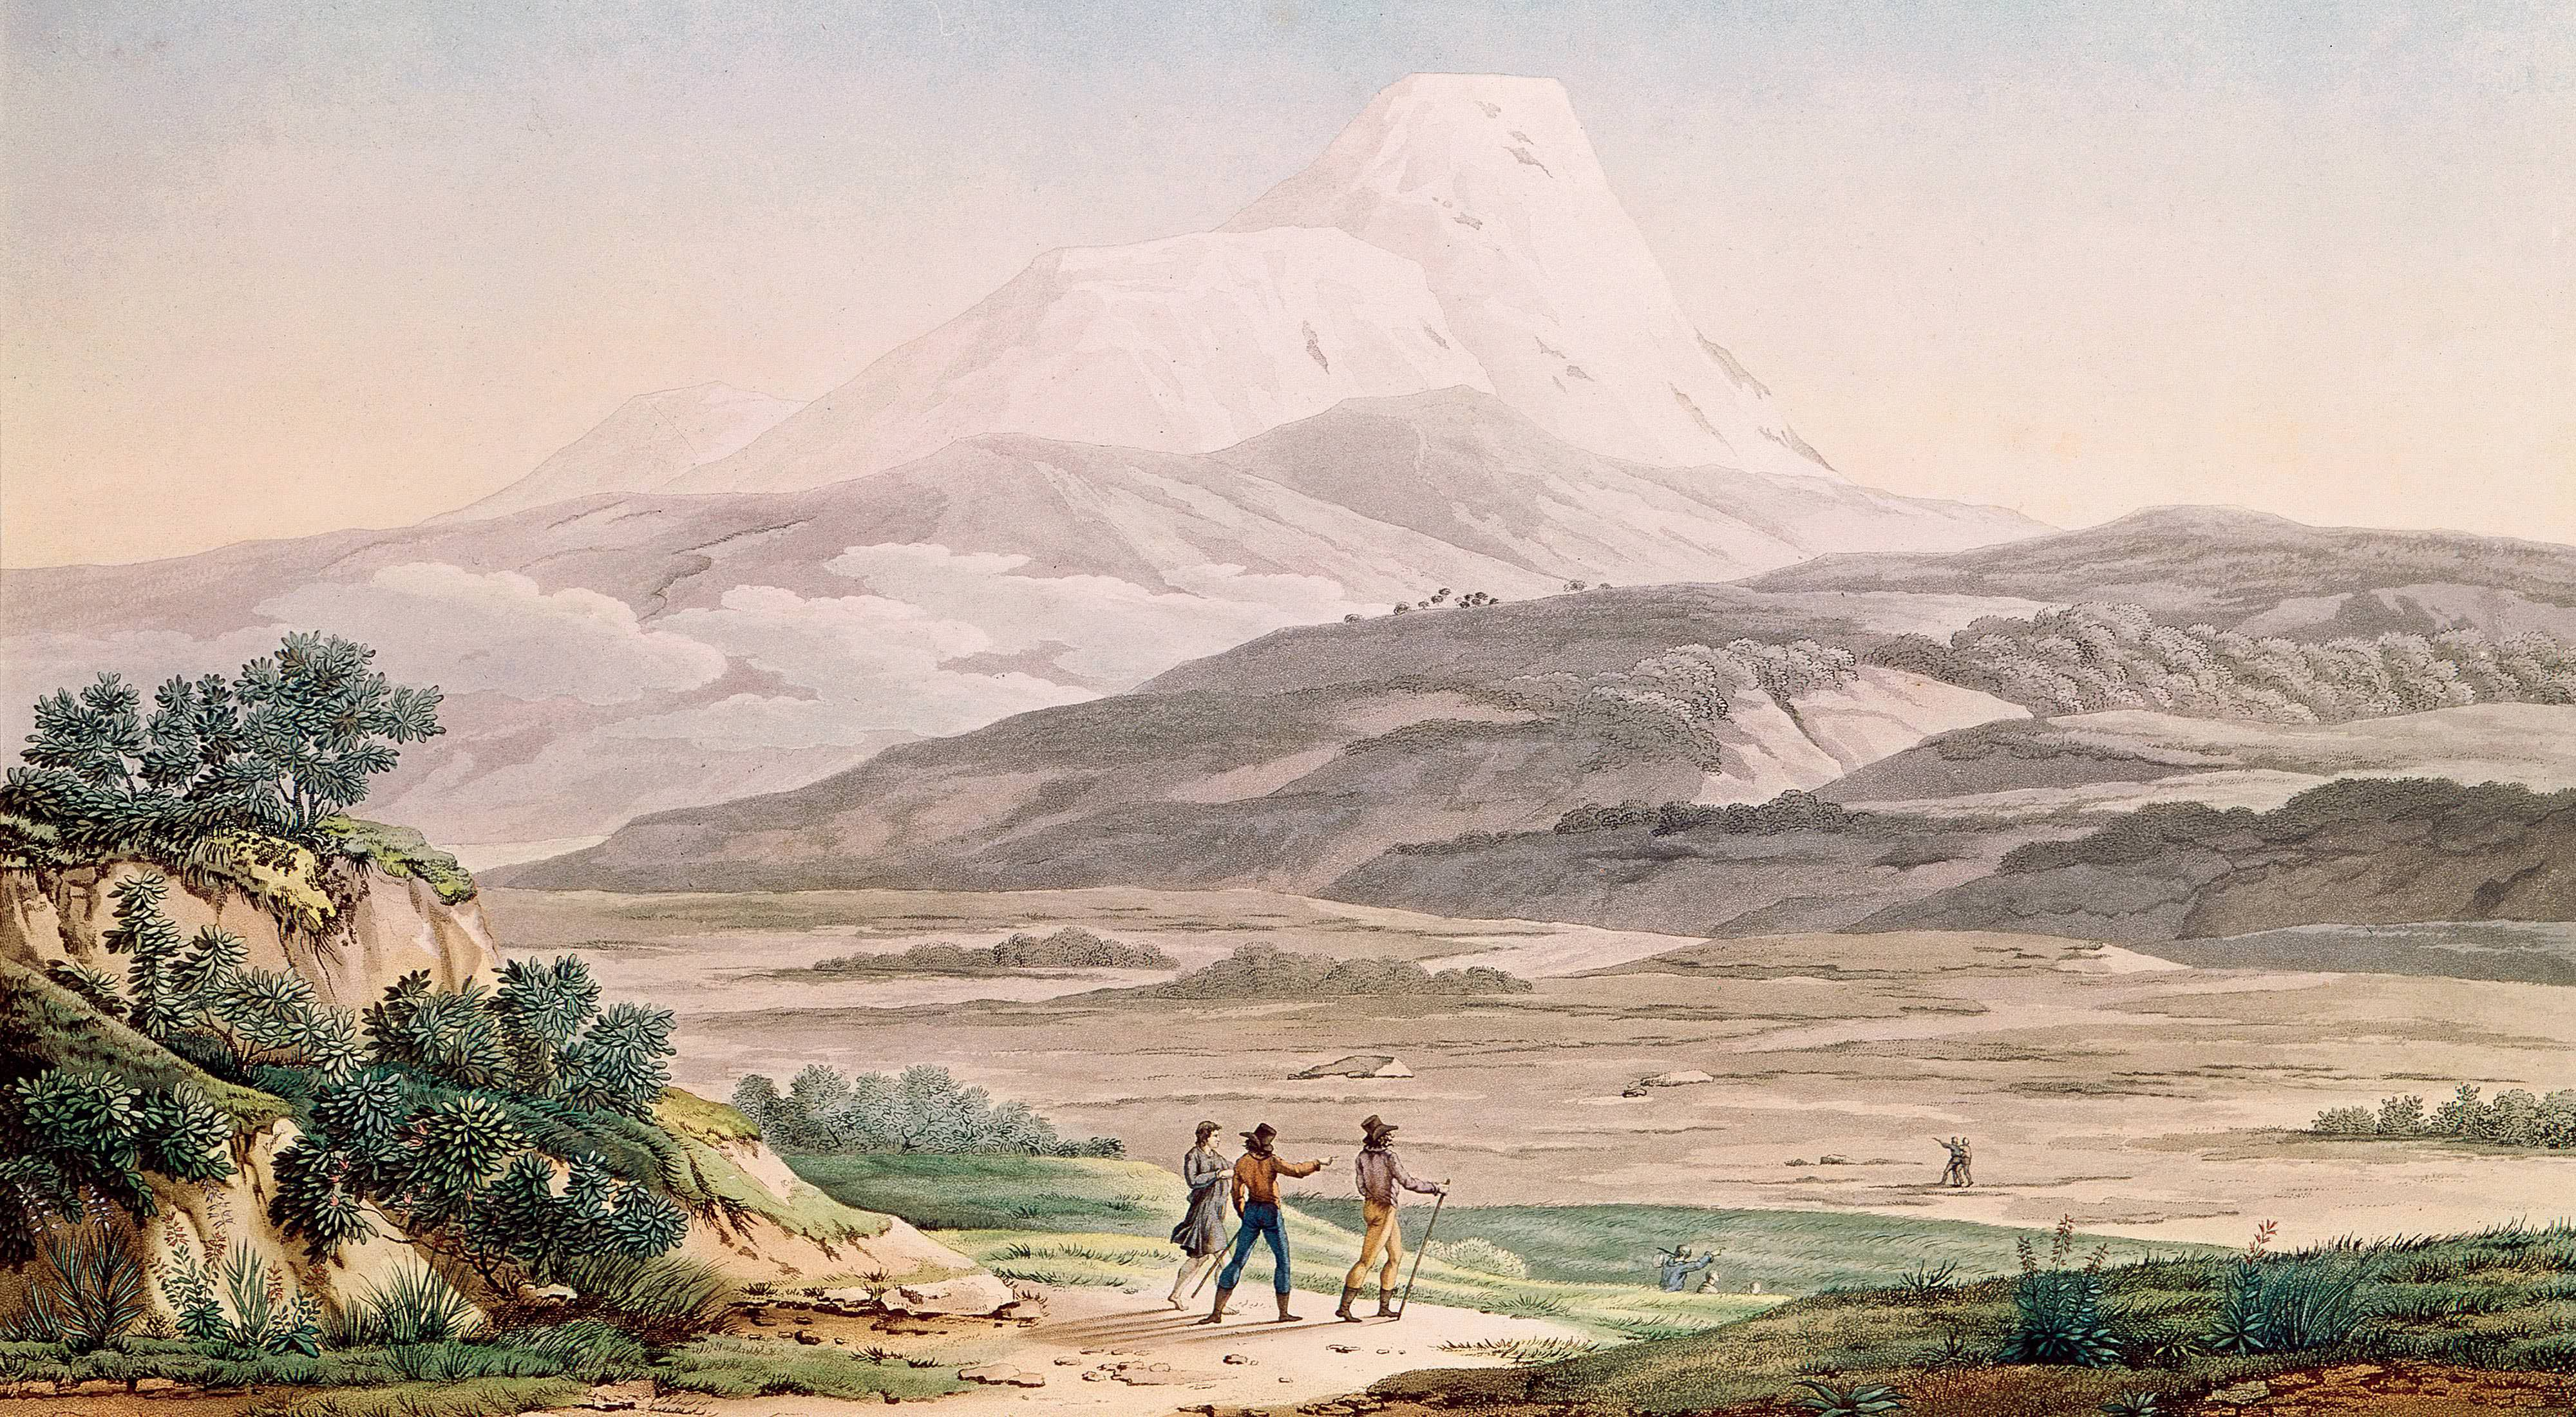 A print from 1814 shows Alexander von Humboldt and his companions exploring Ecuador